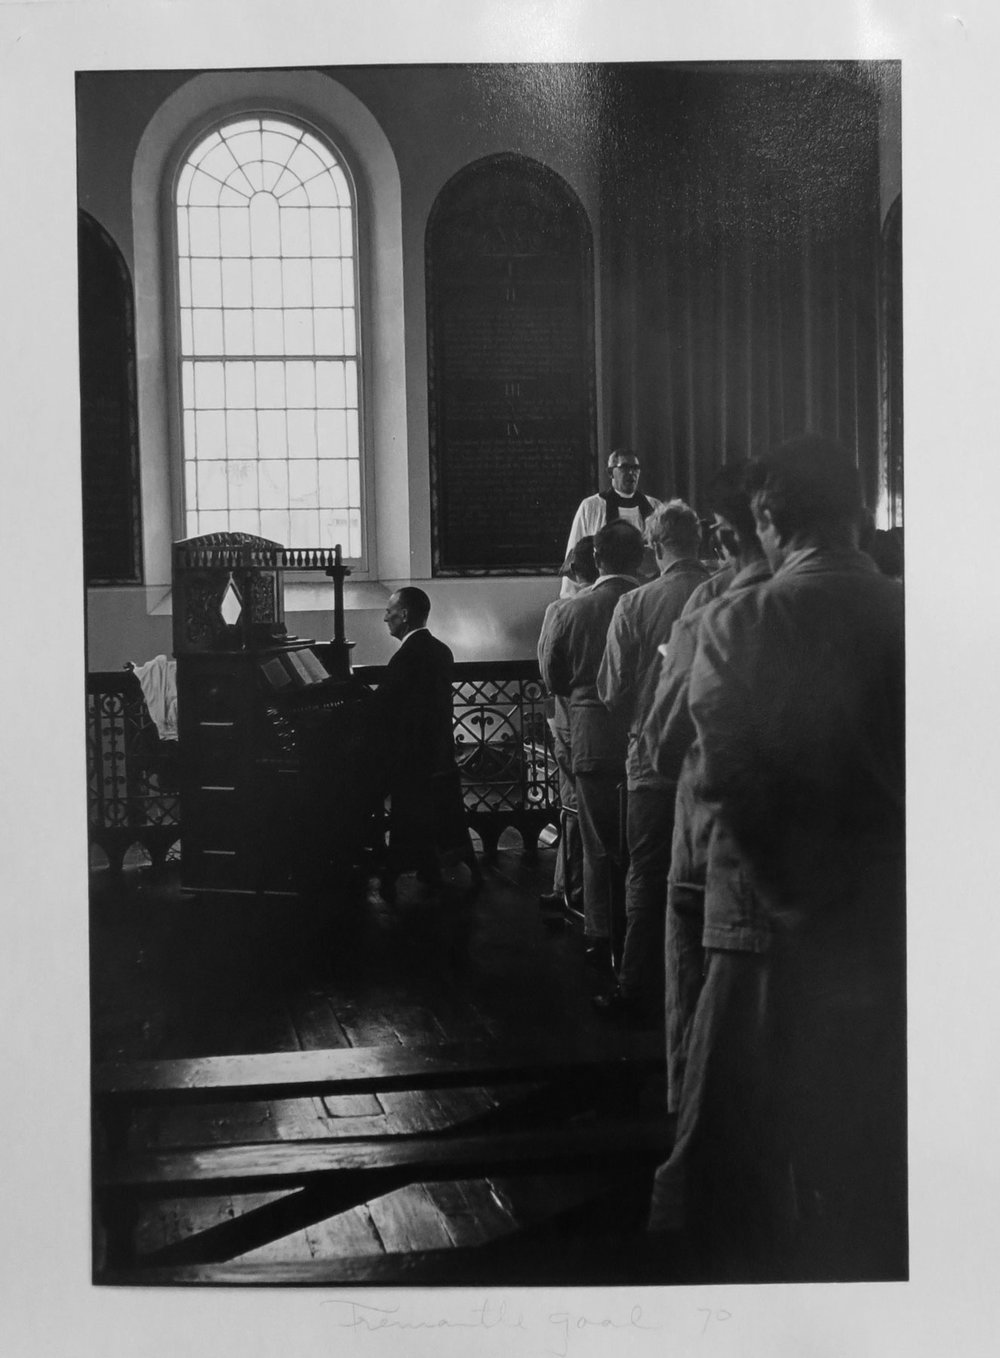 48. Richard Woldendorp, 'Chapel, Fremantle Prison, Fremantle WA', BW58b, taken and printed in c.1970, Vintage Print